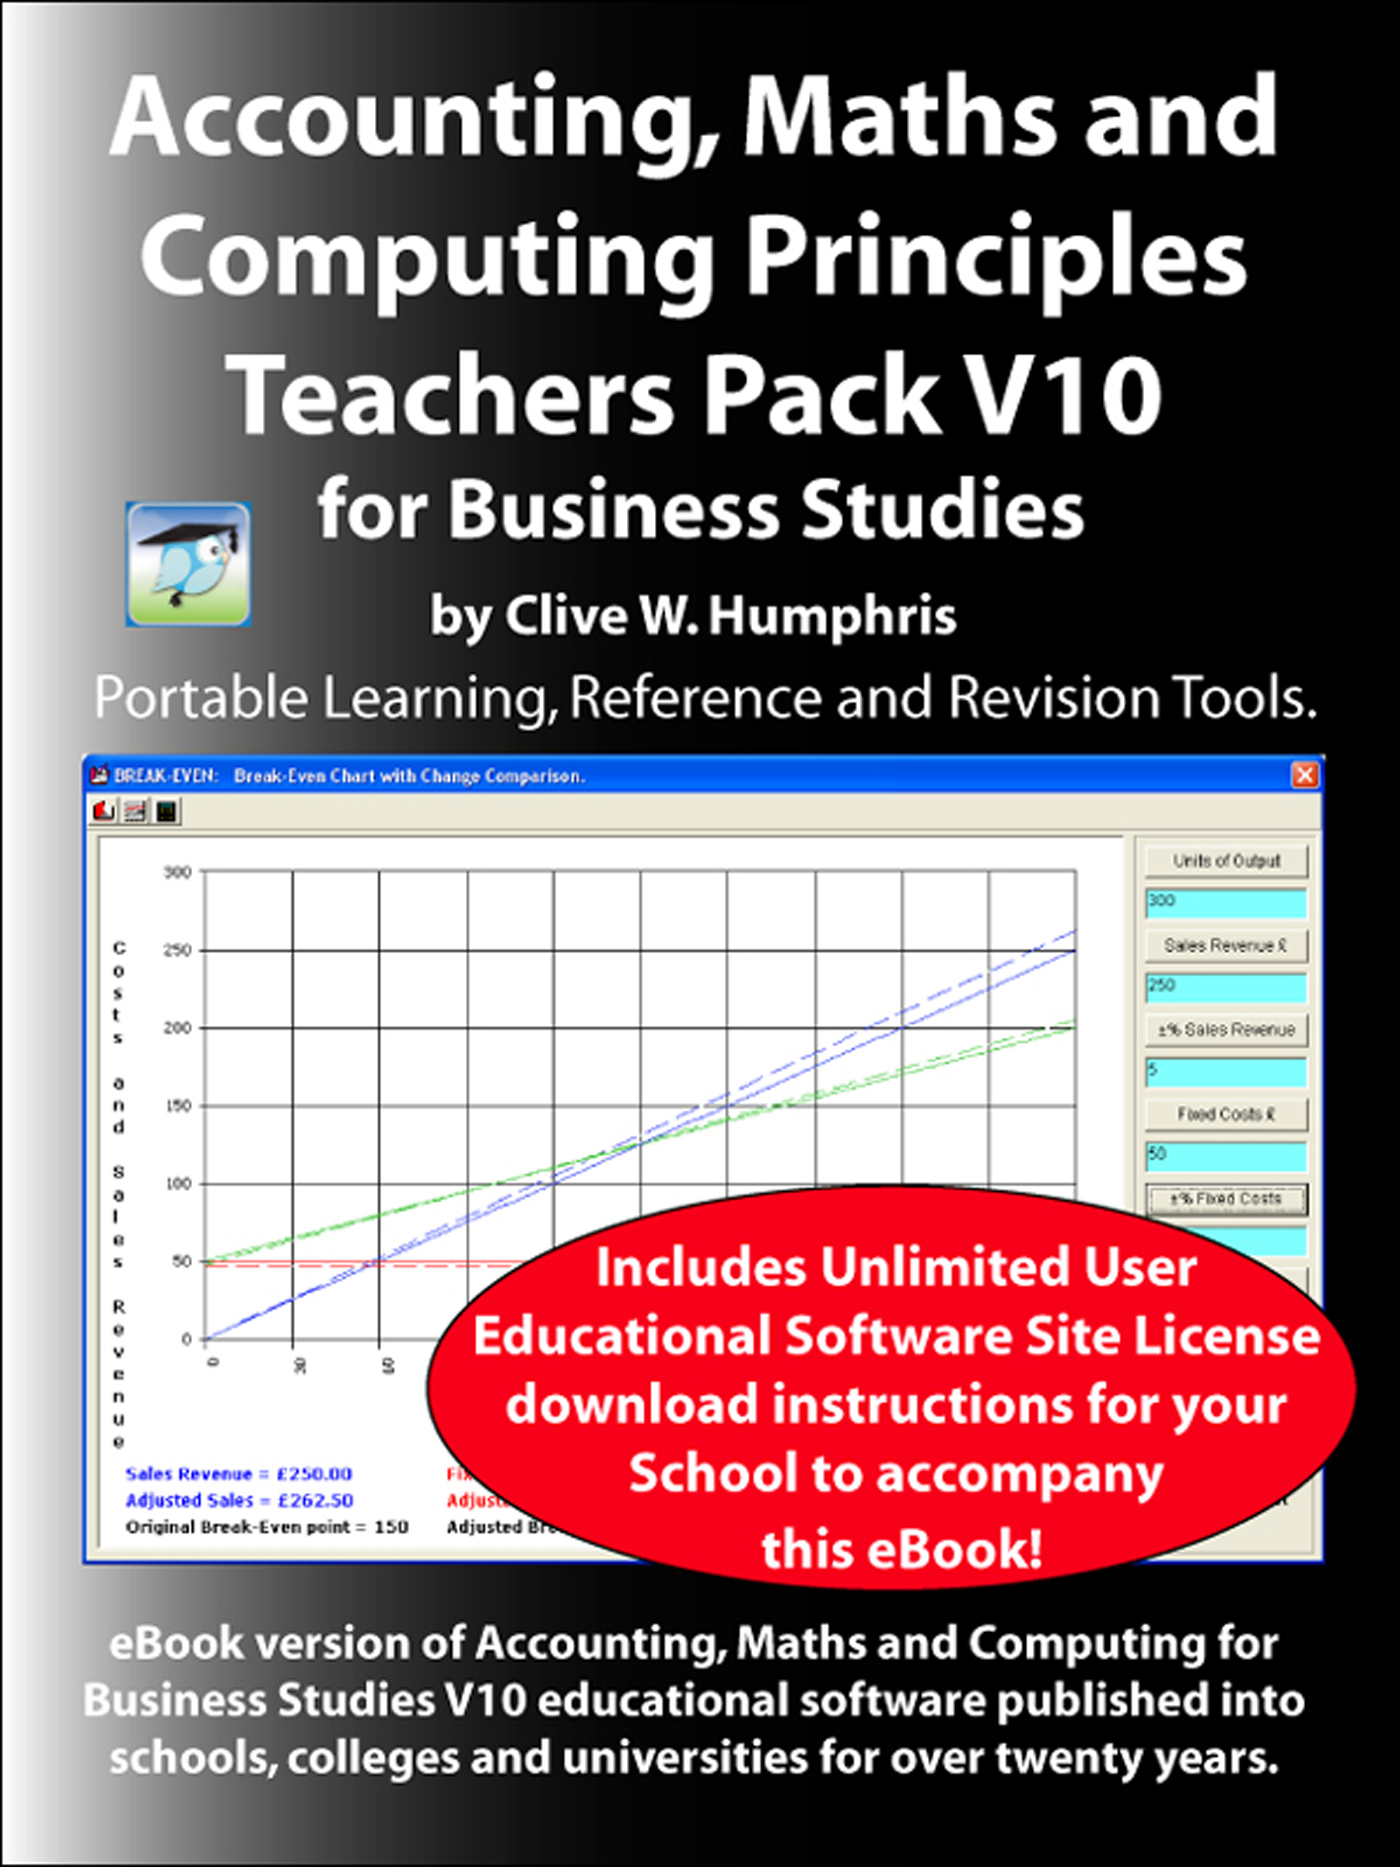 Accounting, Maths and Computing Principles for Business Studies Teachers Pack V10